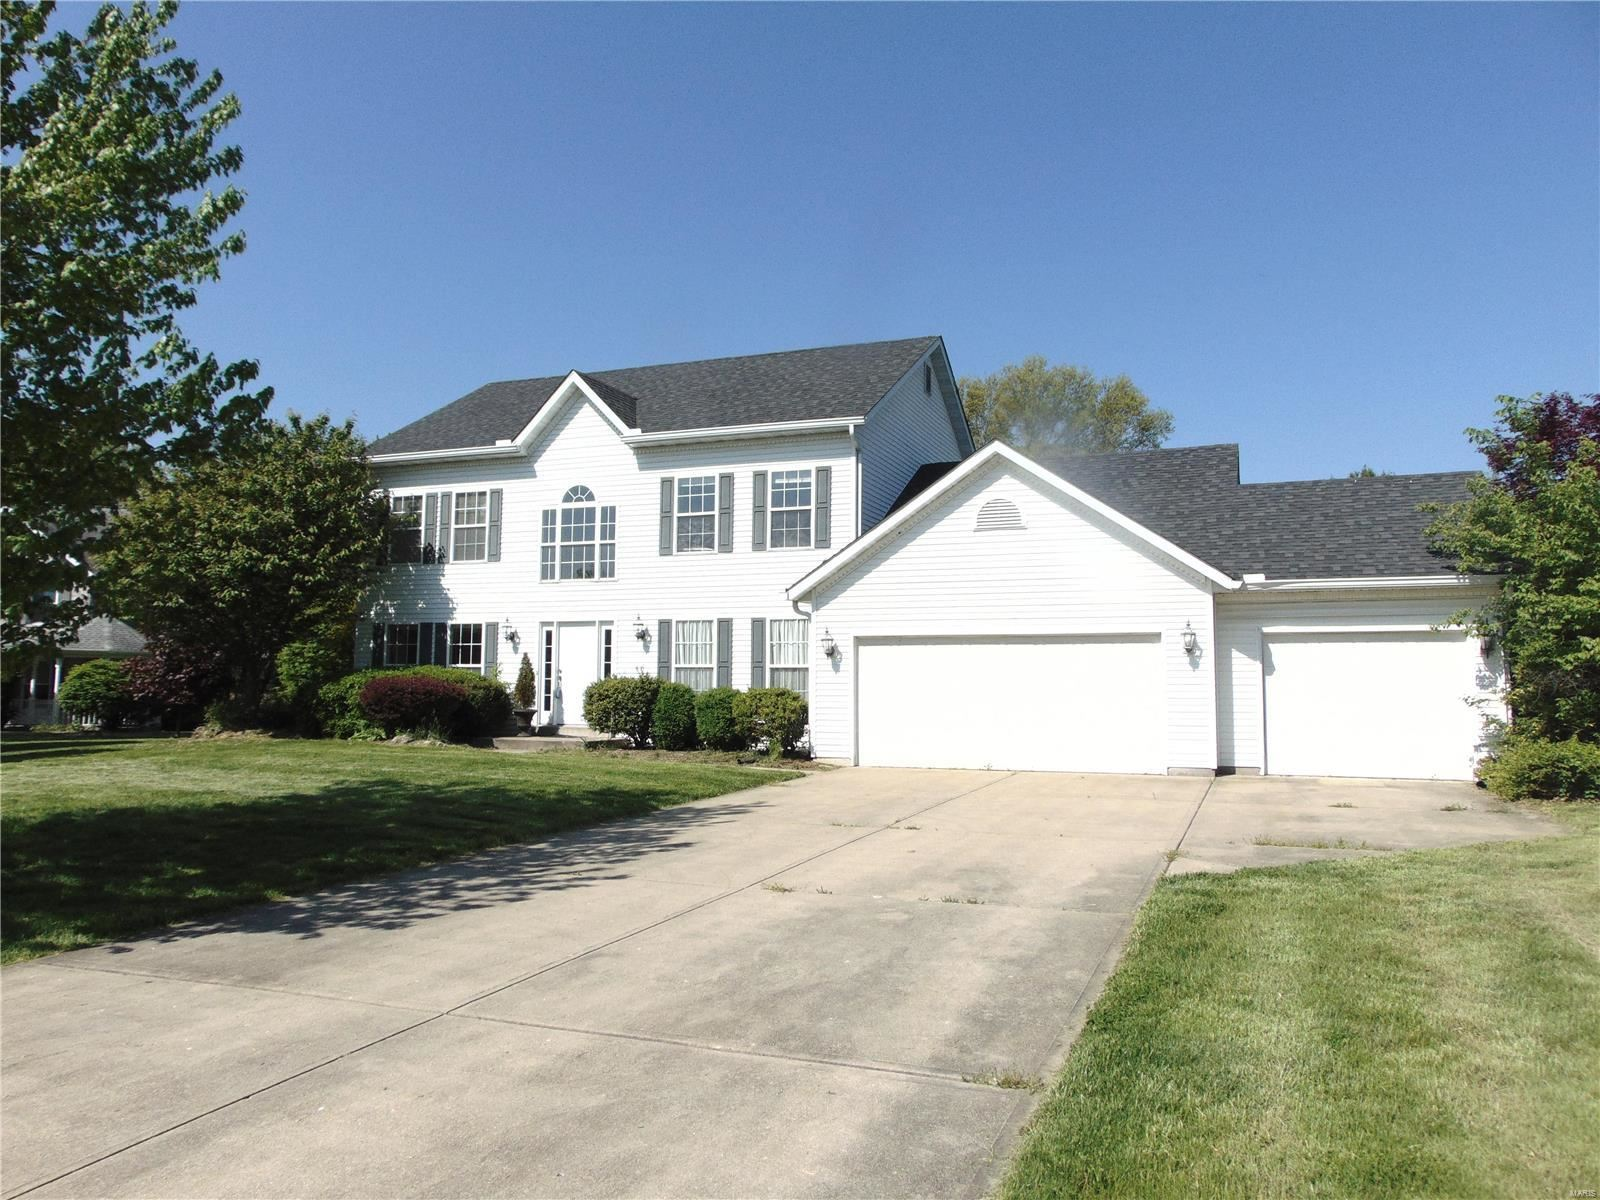 117 South Lindenwood Drive, Collinsville, IL 62234 - MLS#: 20027243